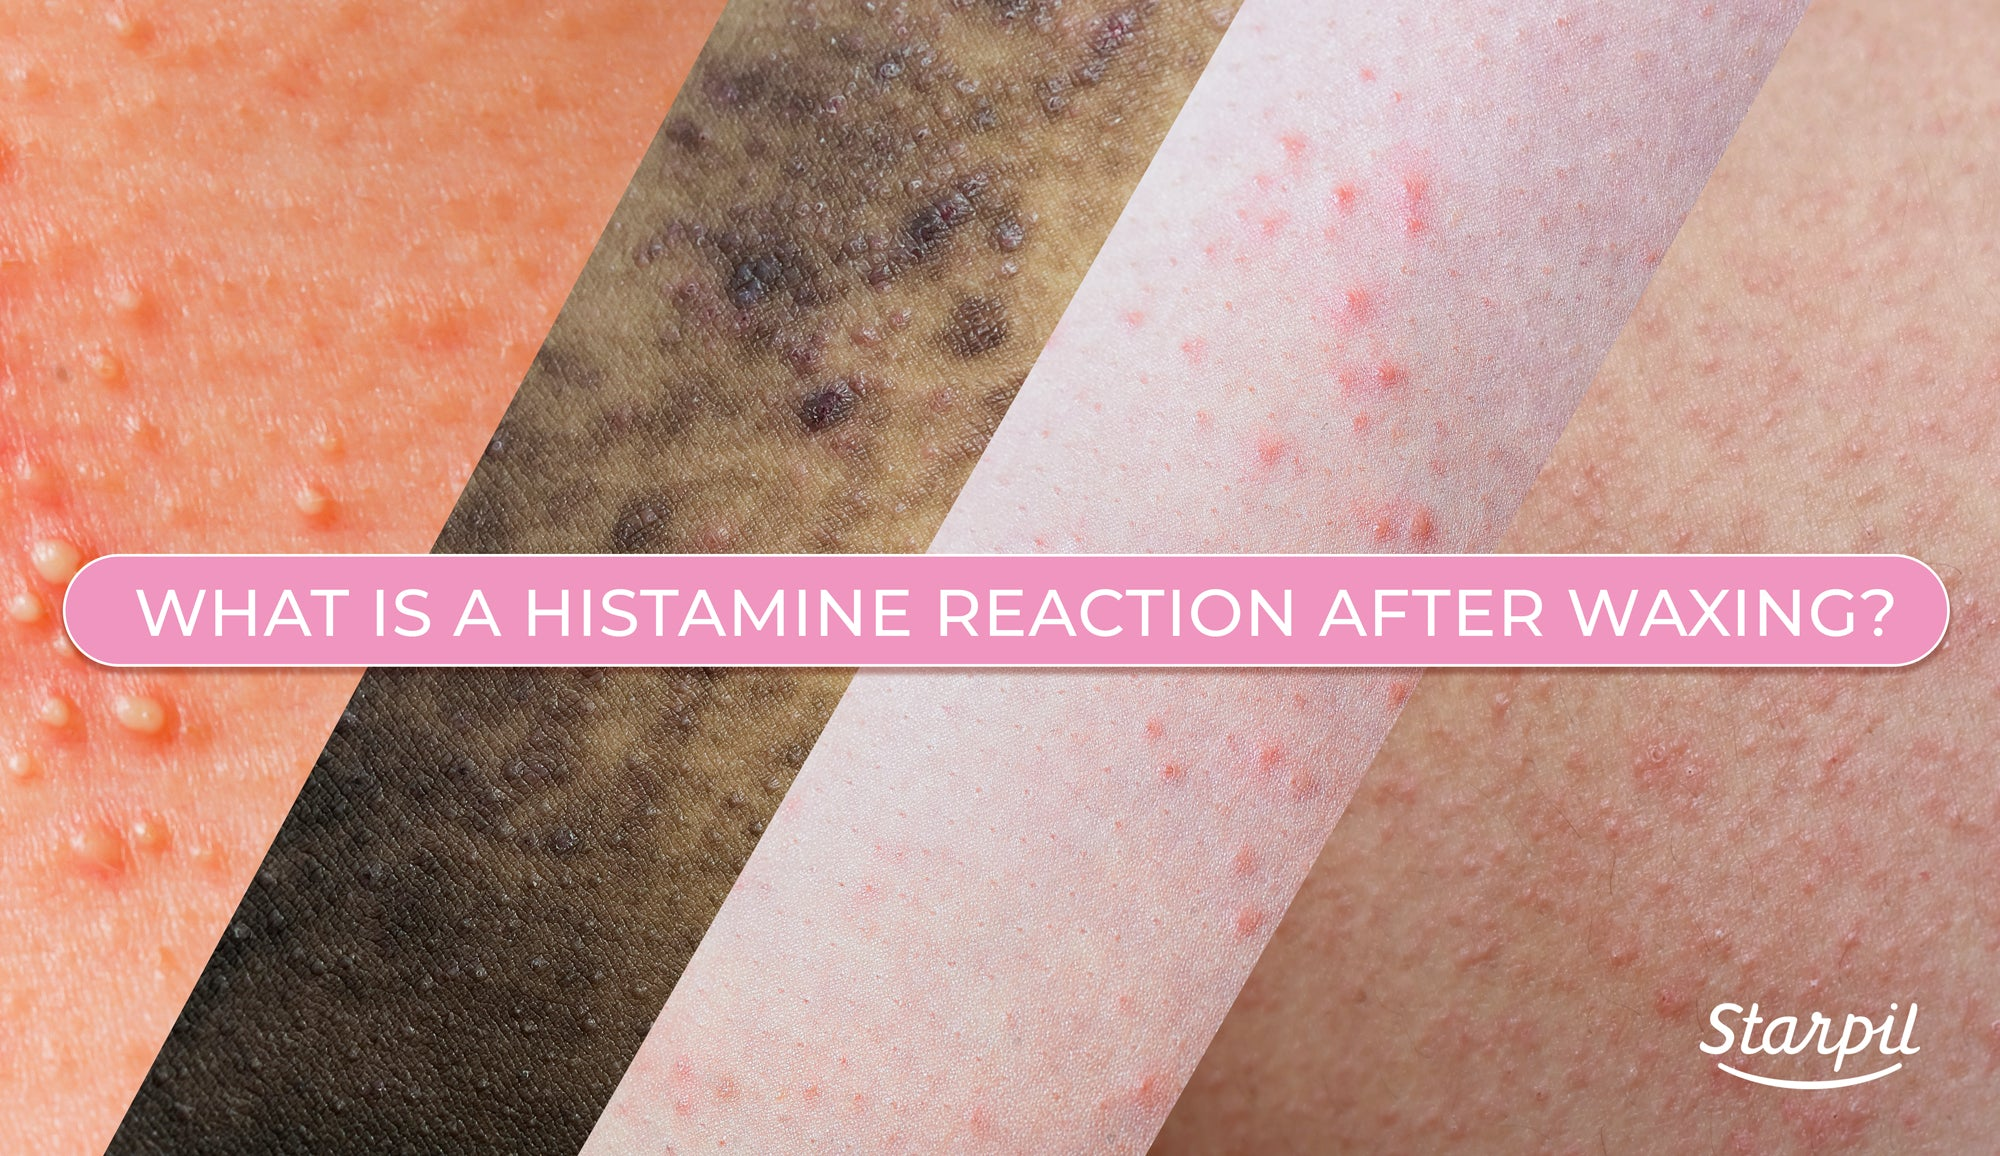 Histamine Reaction After Waxing